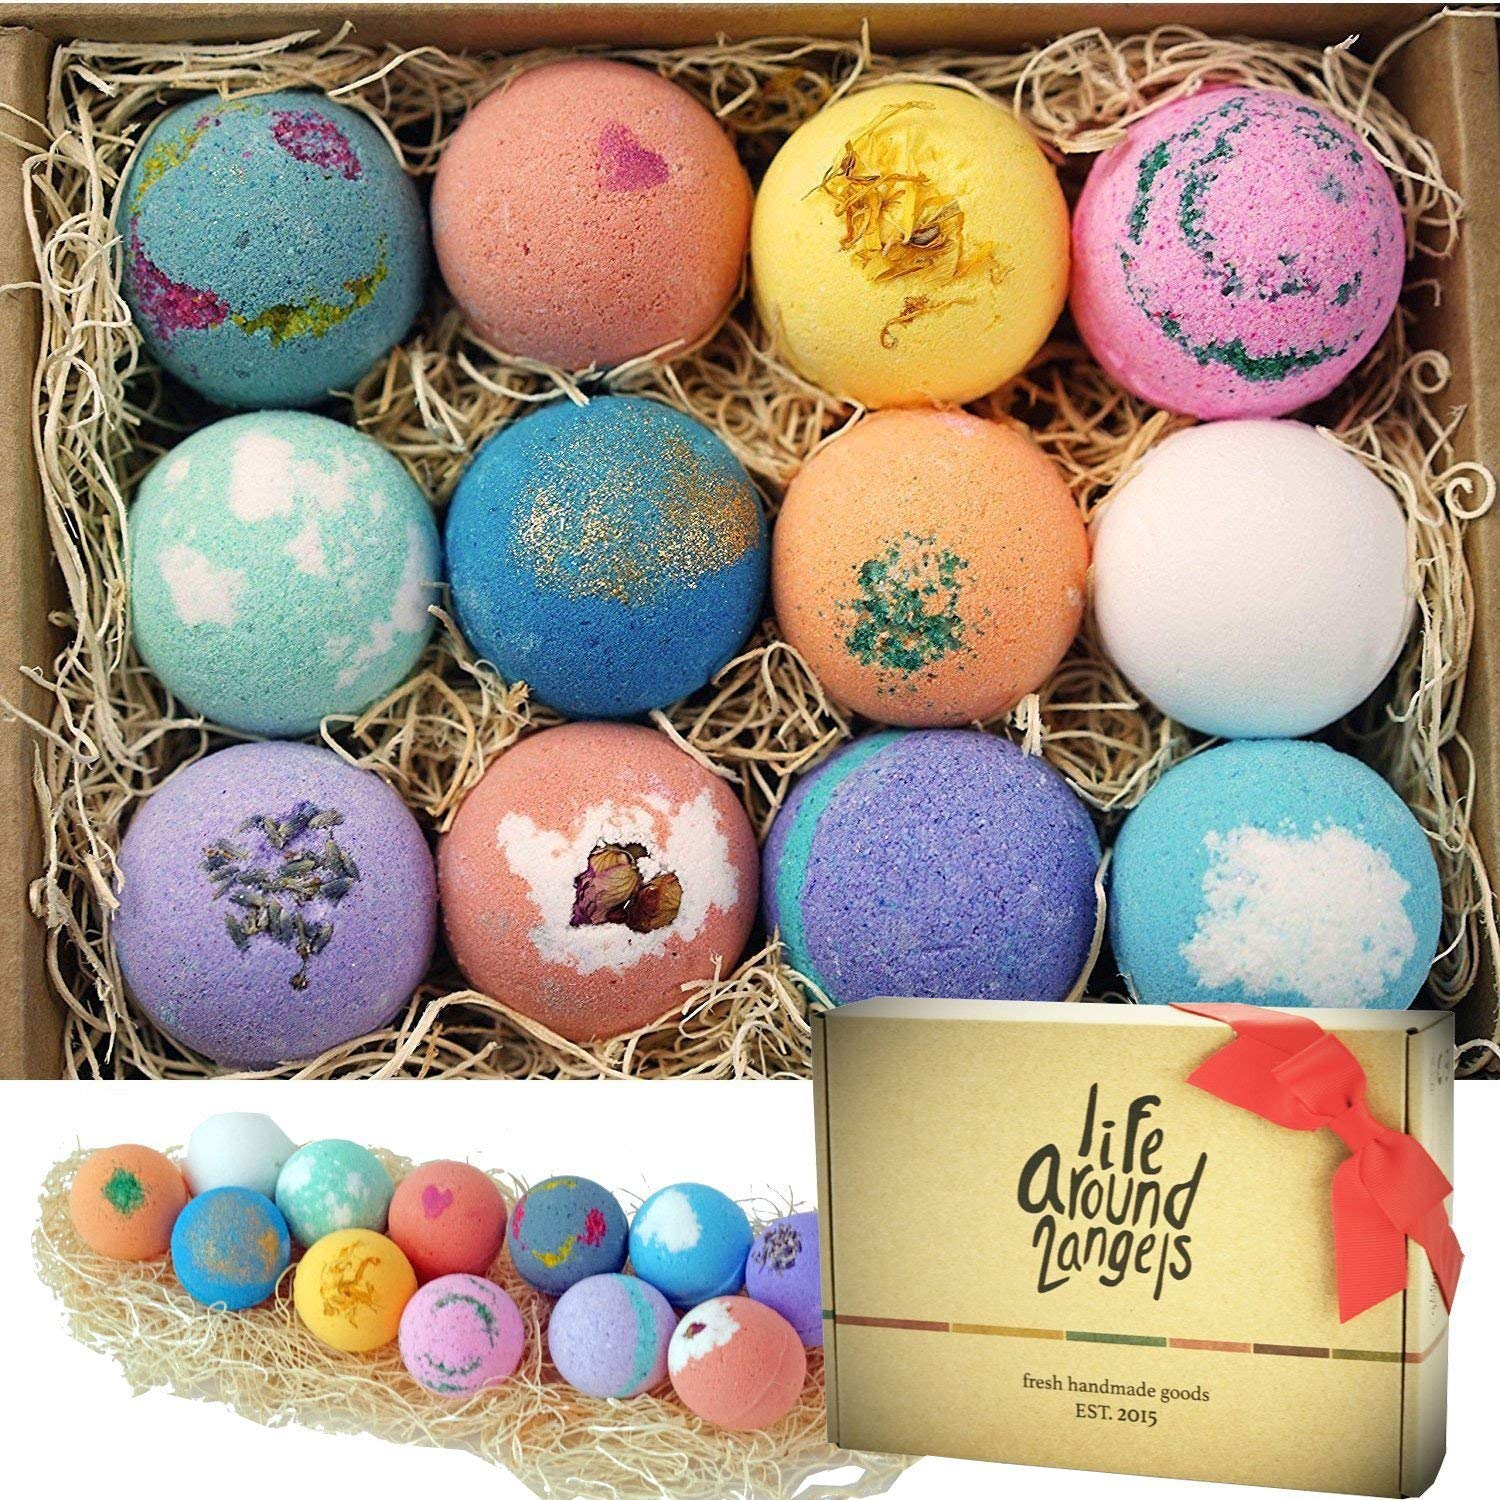 retirement-gifts-for-women-bath-bombs